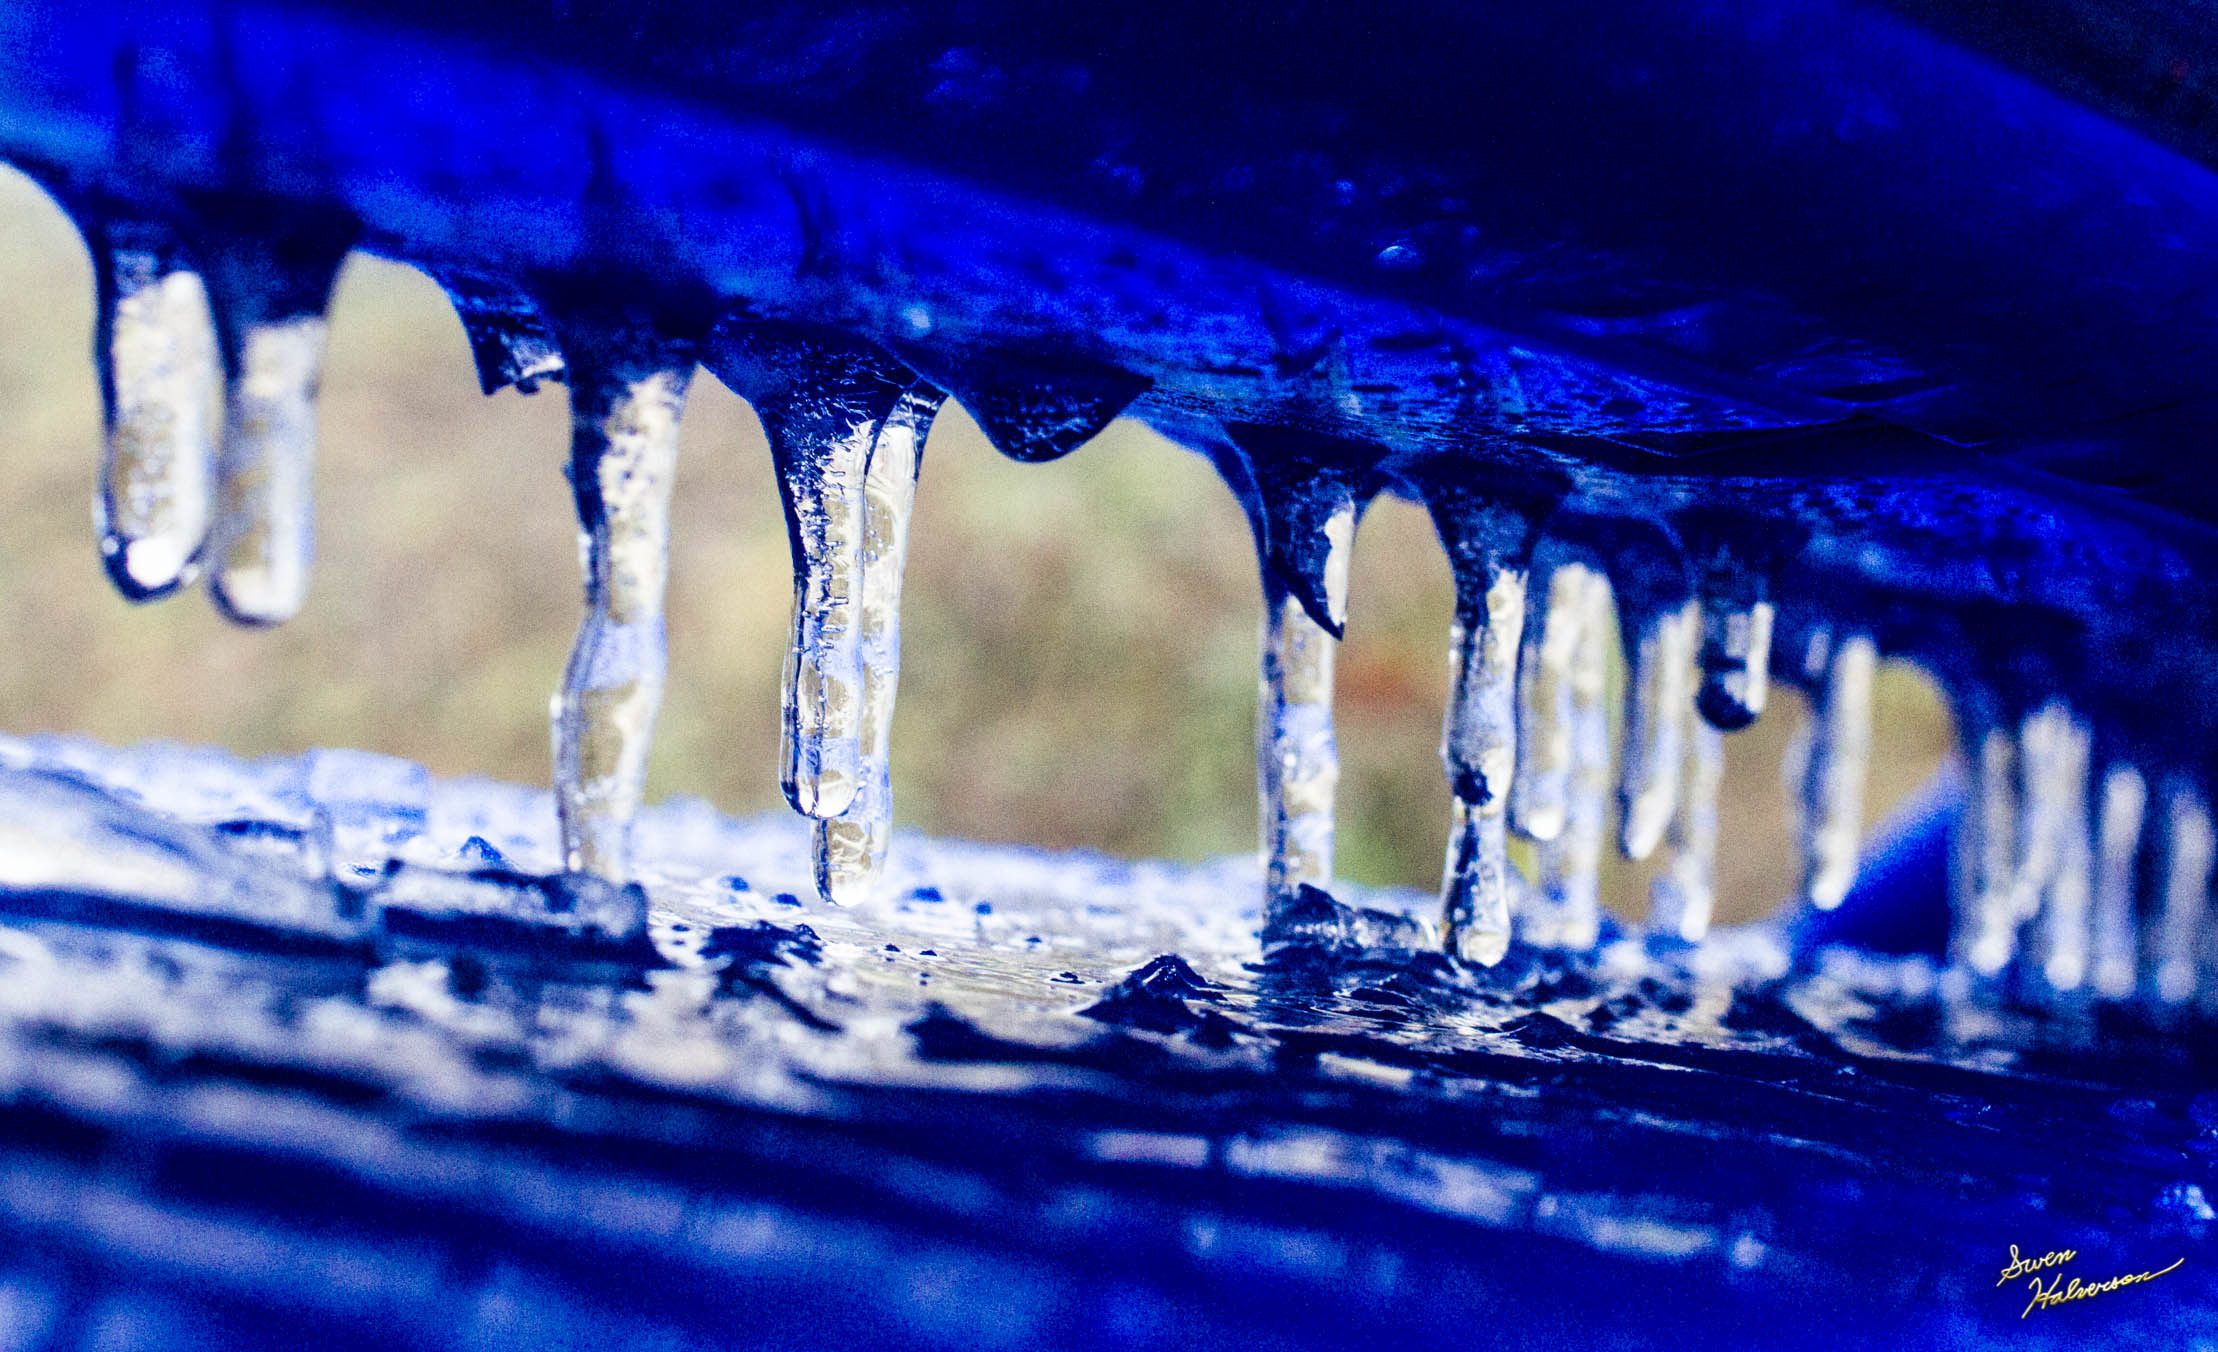 Theme: Sparkling | Title: Blue Icicles